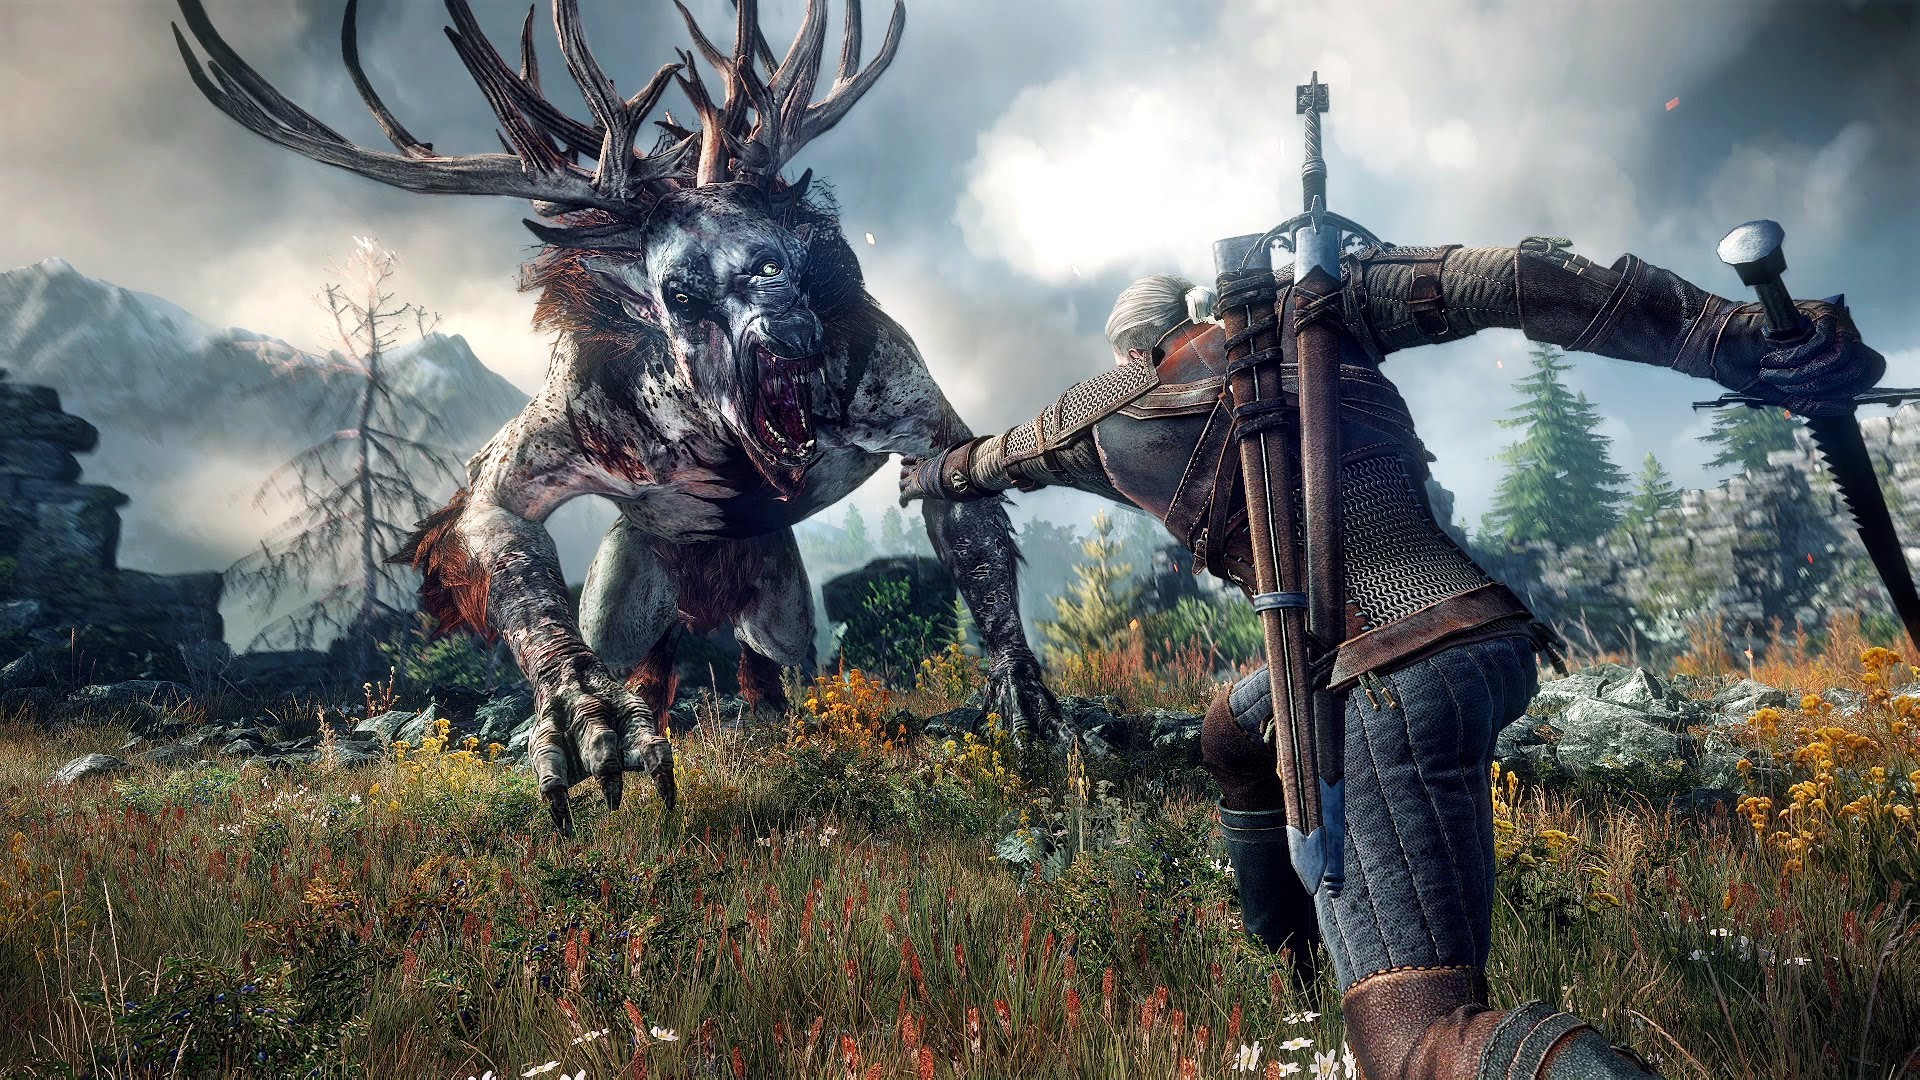 maxresdefault 25 Witcher 3 Behind The Scenes Video Highlights Music And Sound Effects